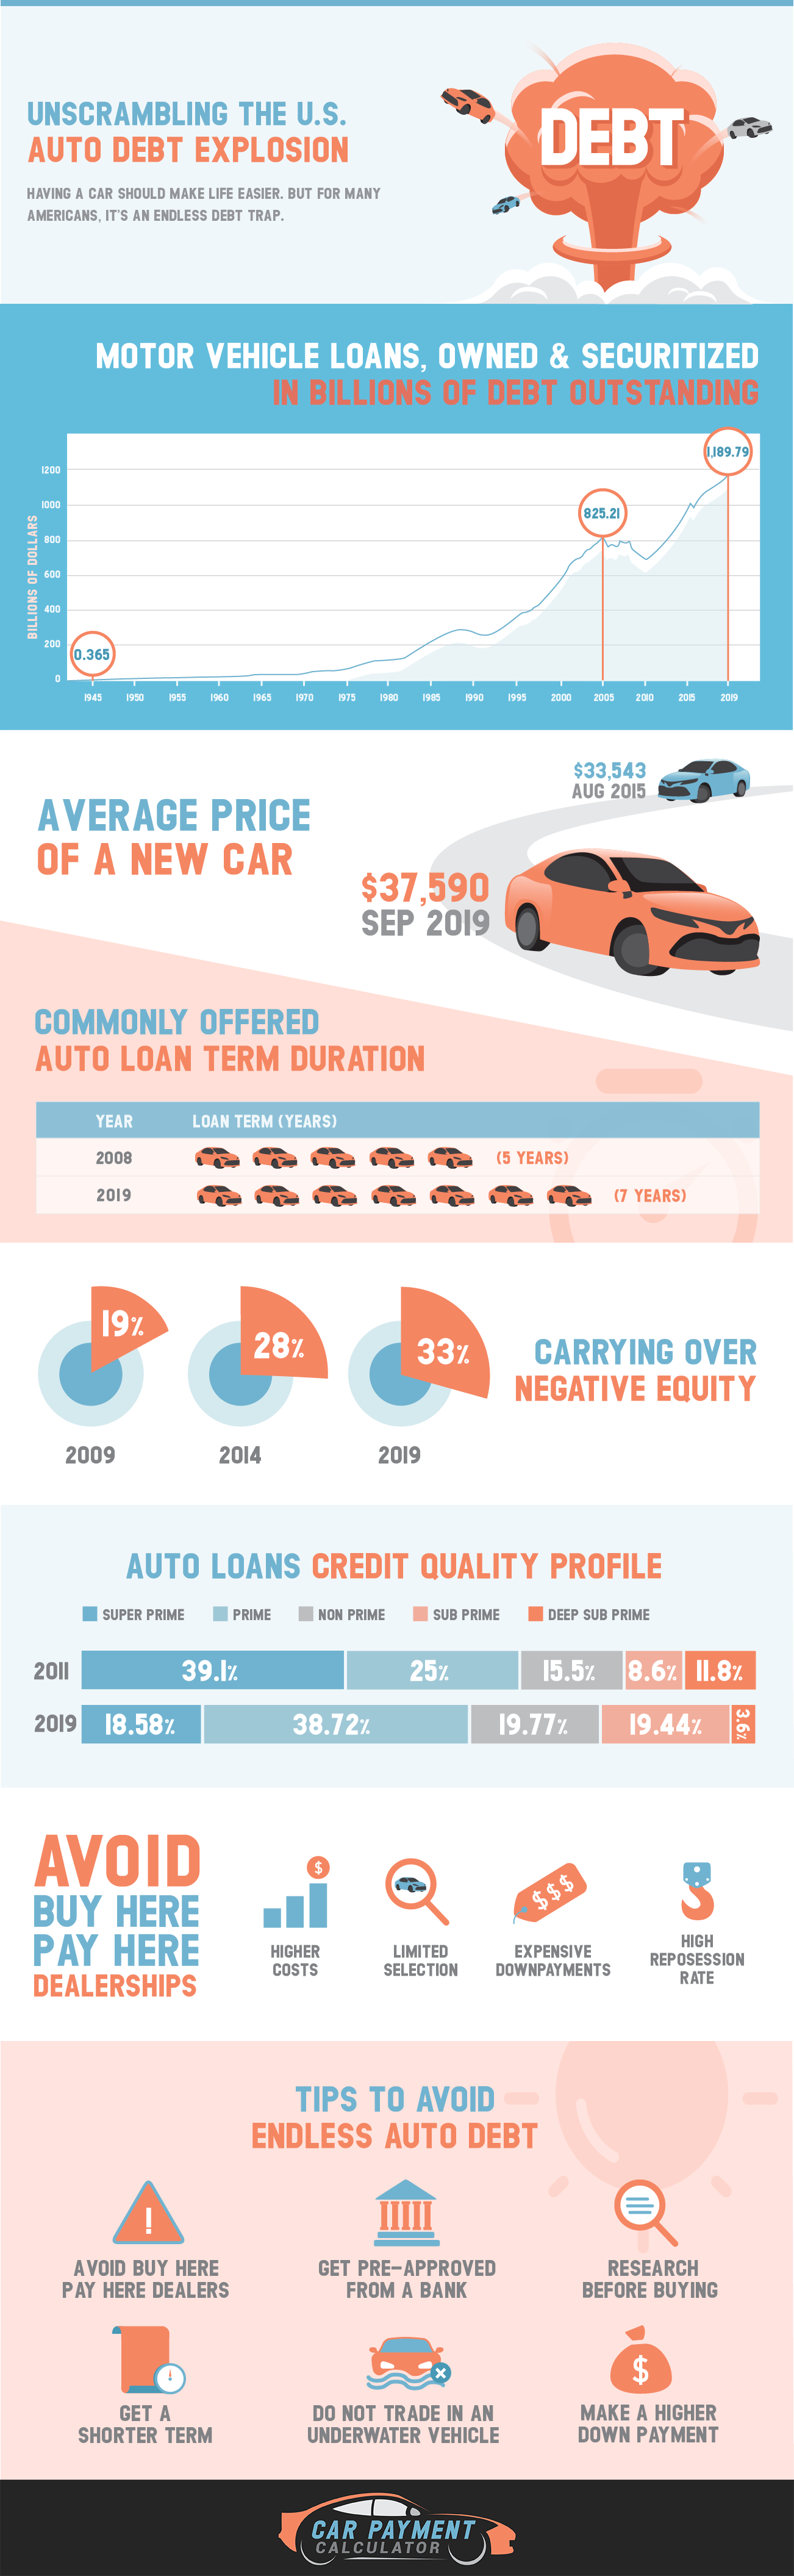 Unscrambling the U.S Auto Debt Explosion #infographic